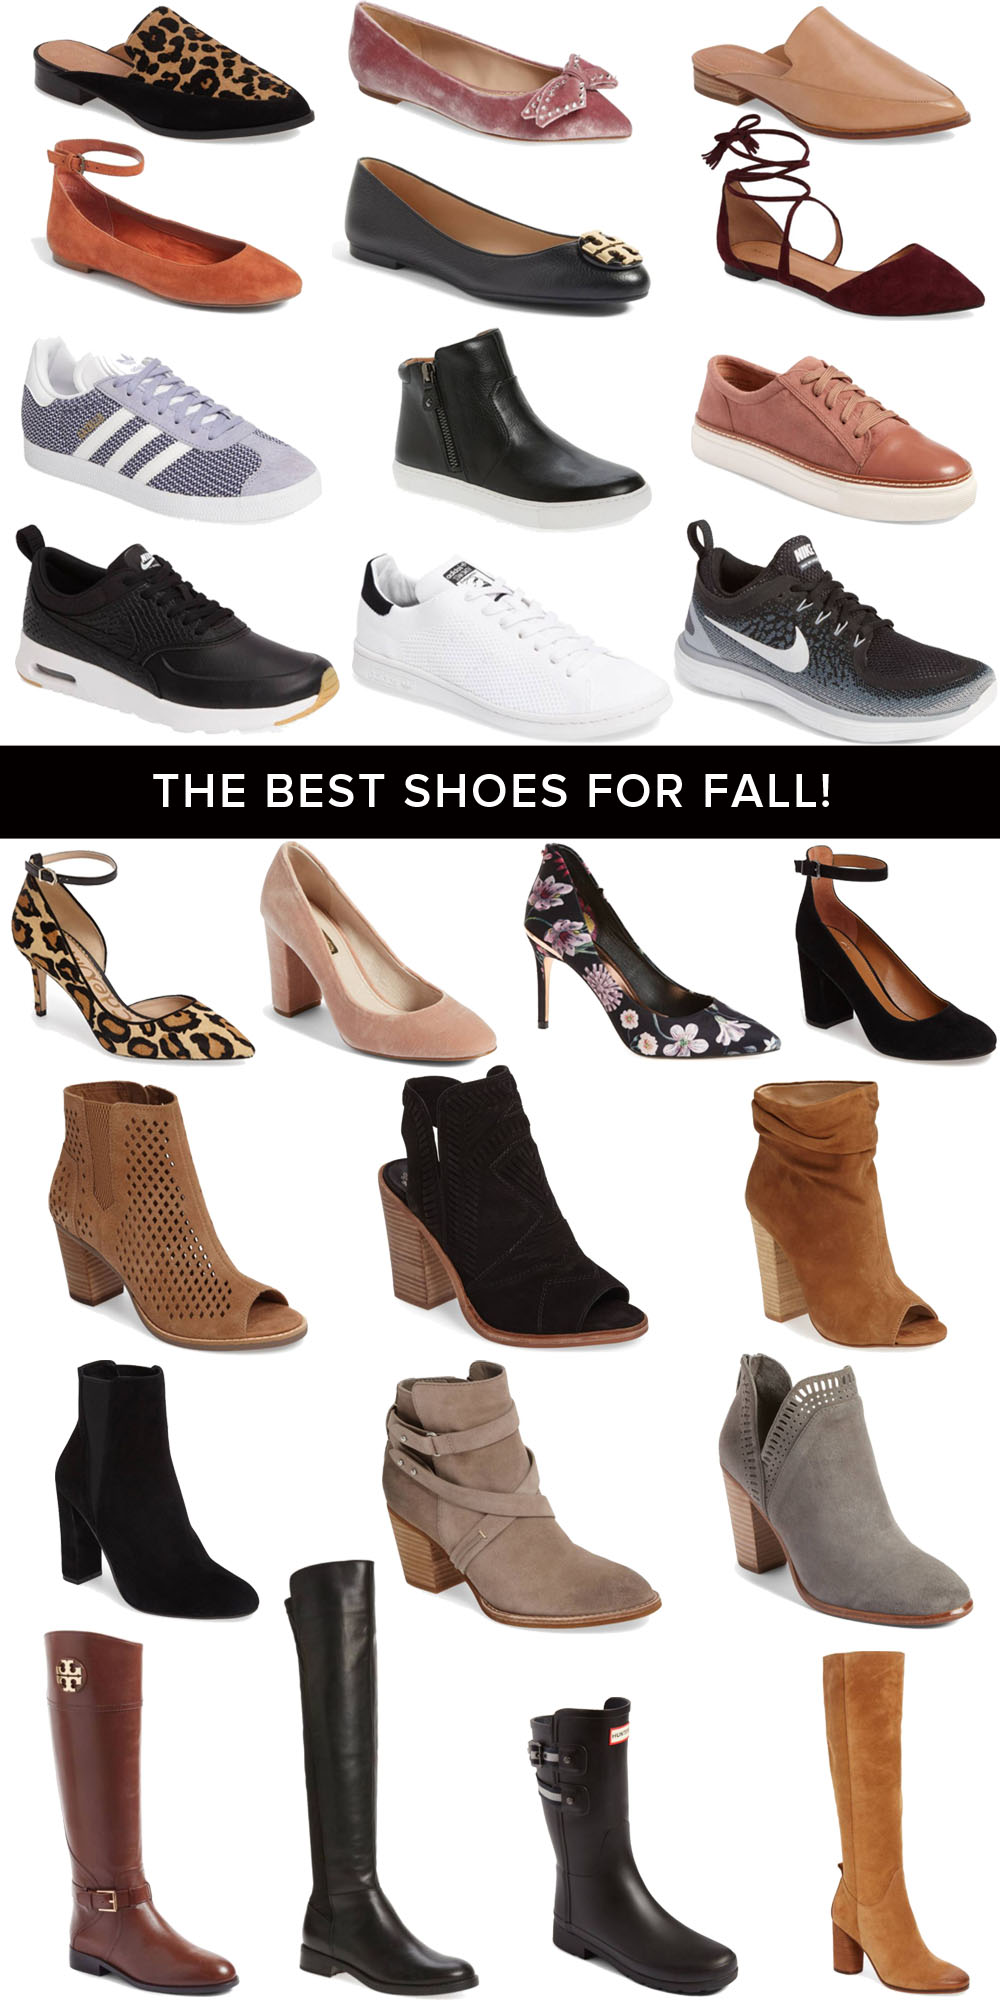 The Best Shoes for Fall (and all currently on sale!)